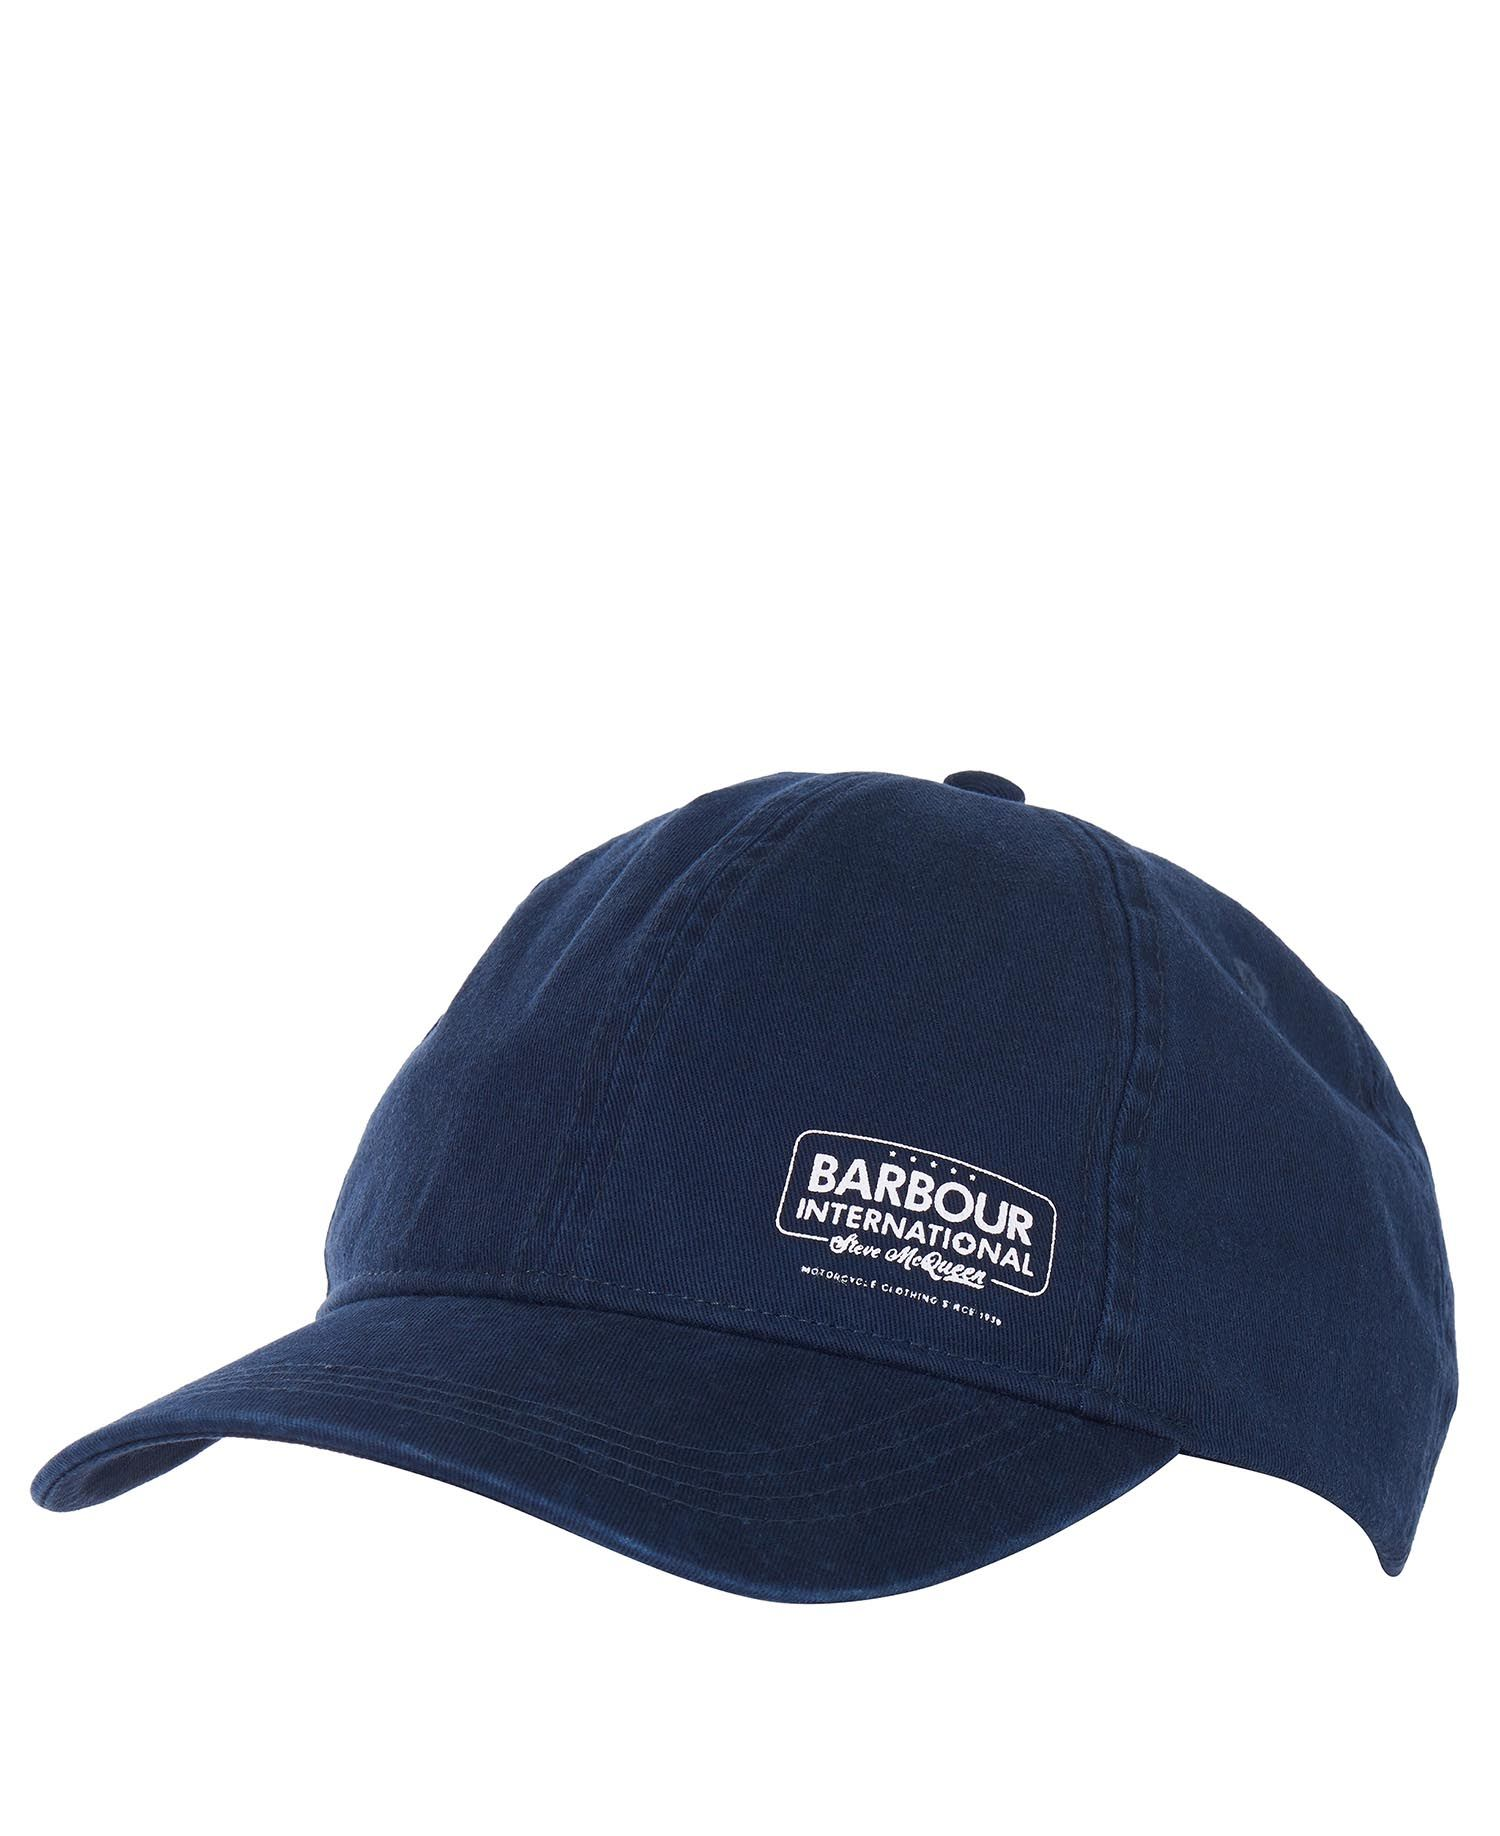 Barbour Branded SMQ Racer Cap Barbour International from Steve McQueen™ Collection